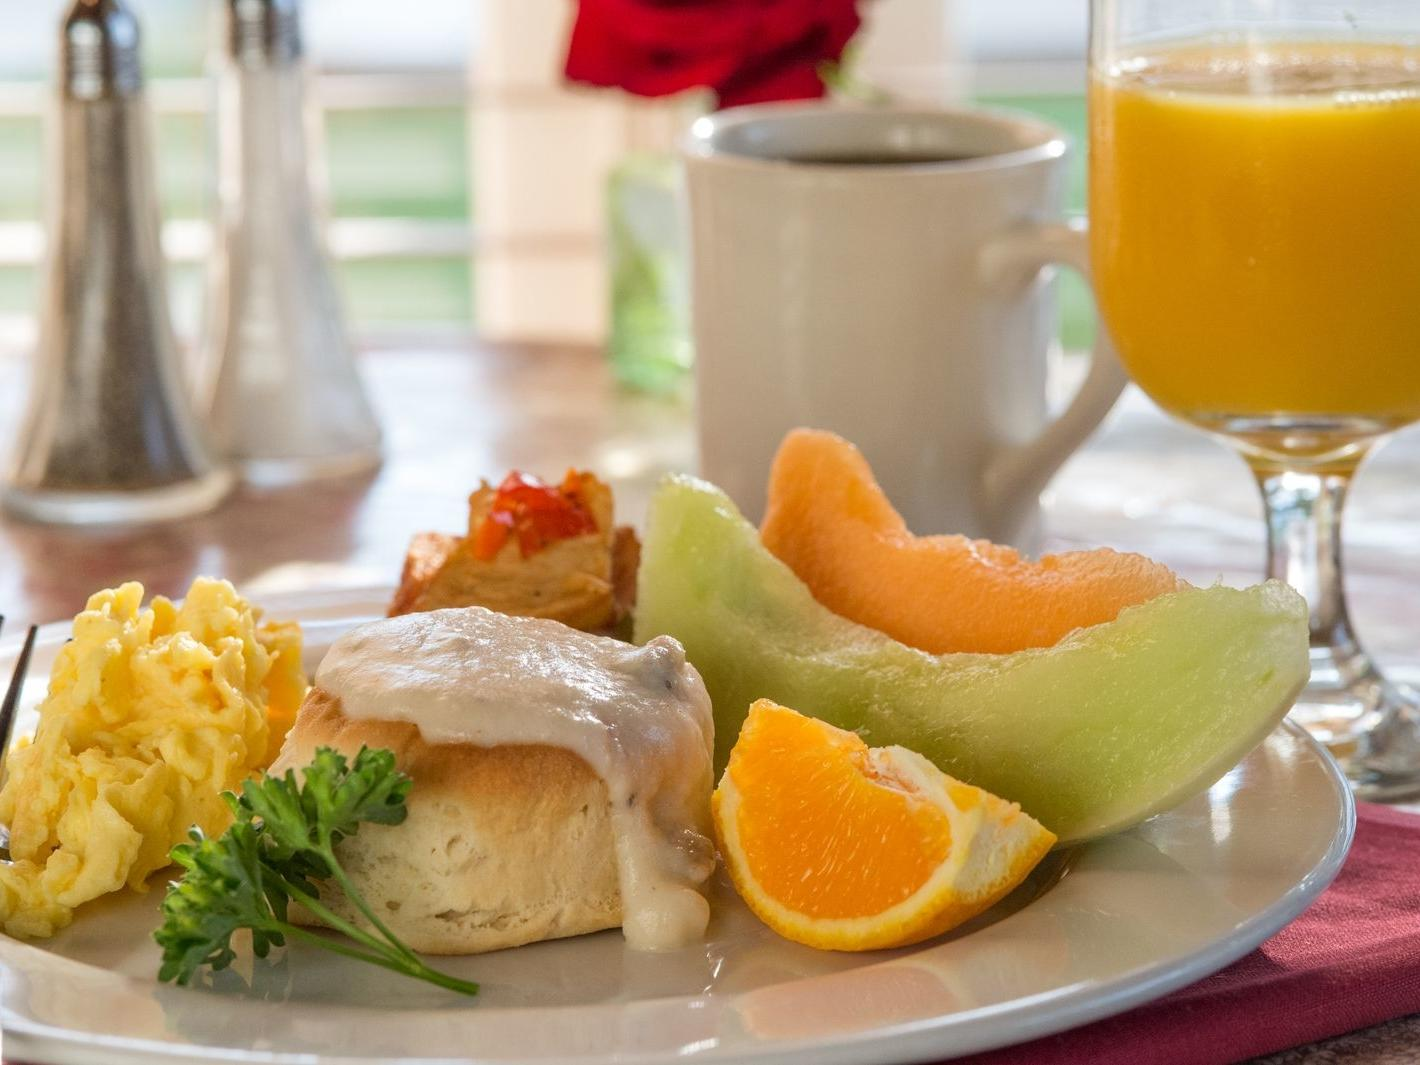 Breakfast plate with a biscuit and gravy, eggs, fruit and orange juice